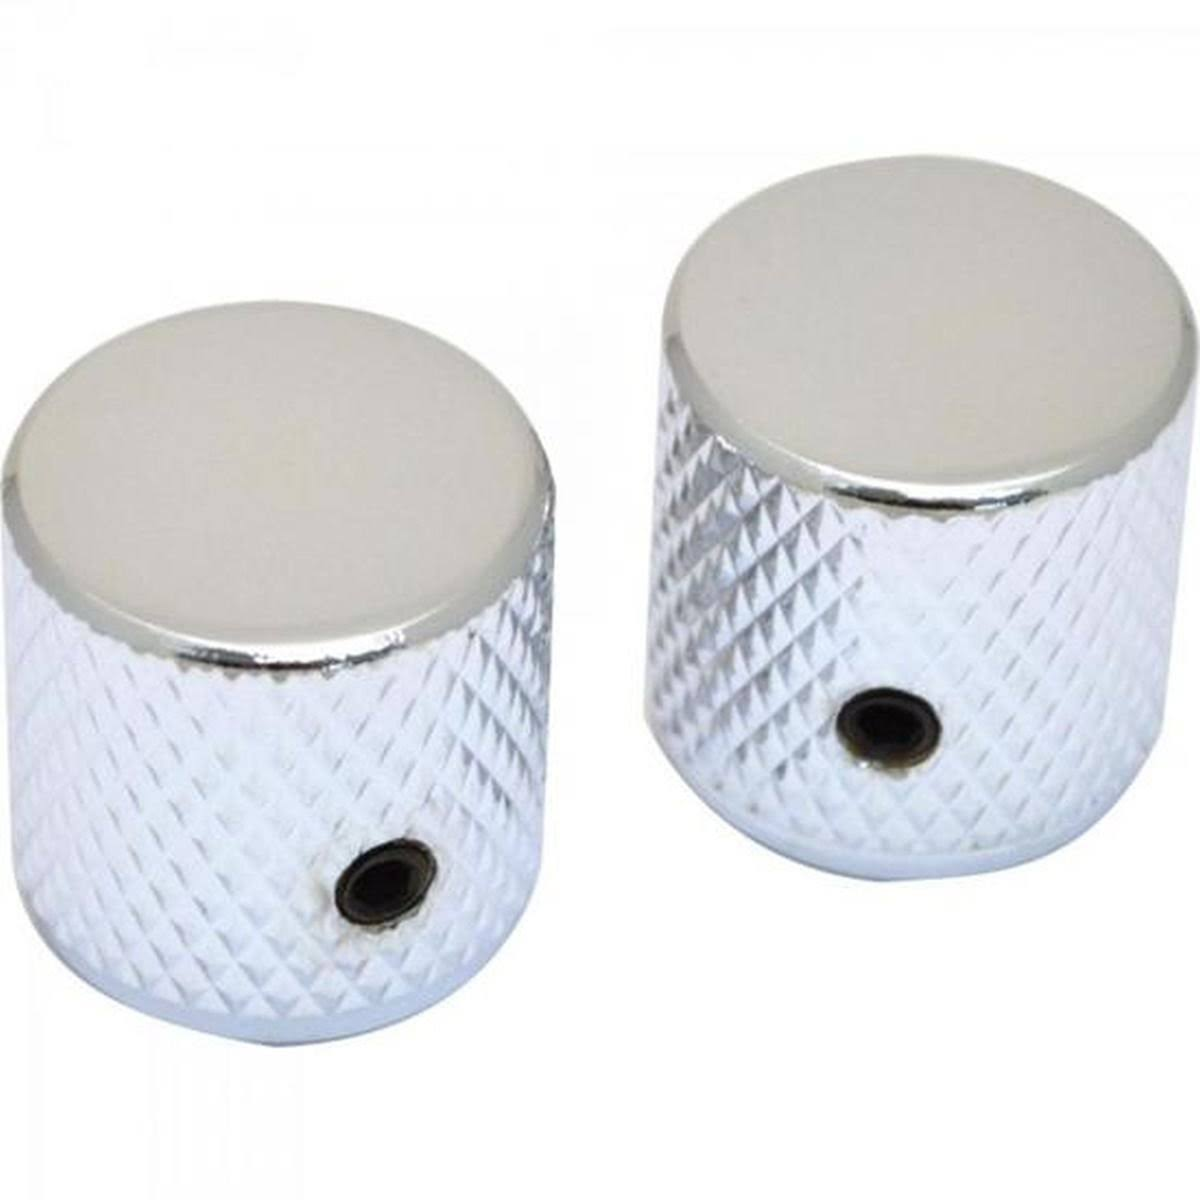 Fender Telecaster/Precision Bass Knobs - Knurled Chrome